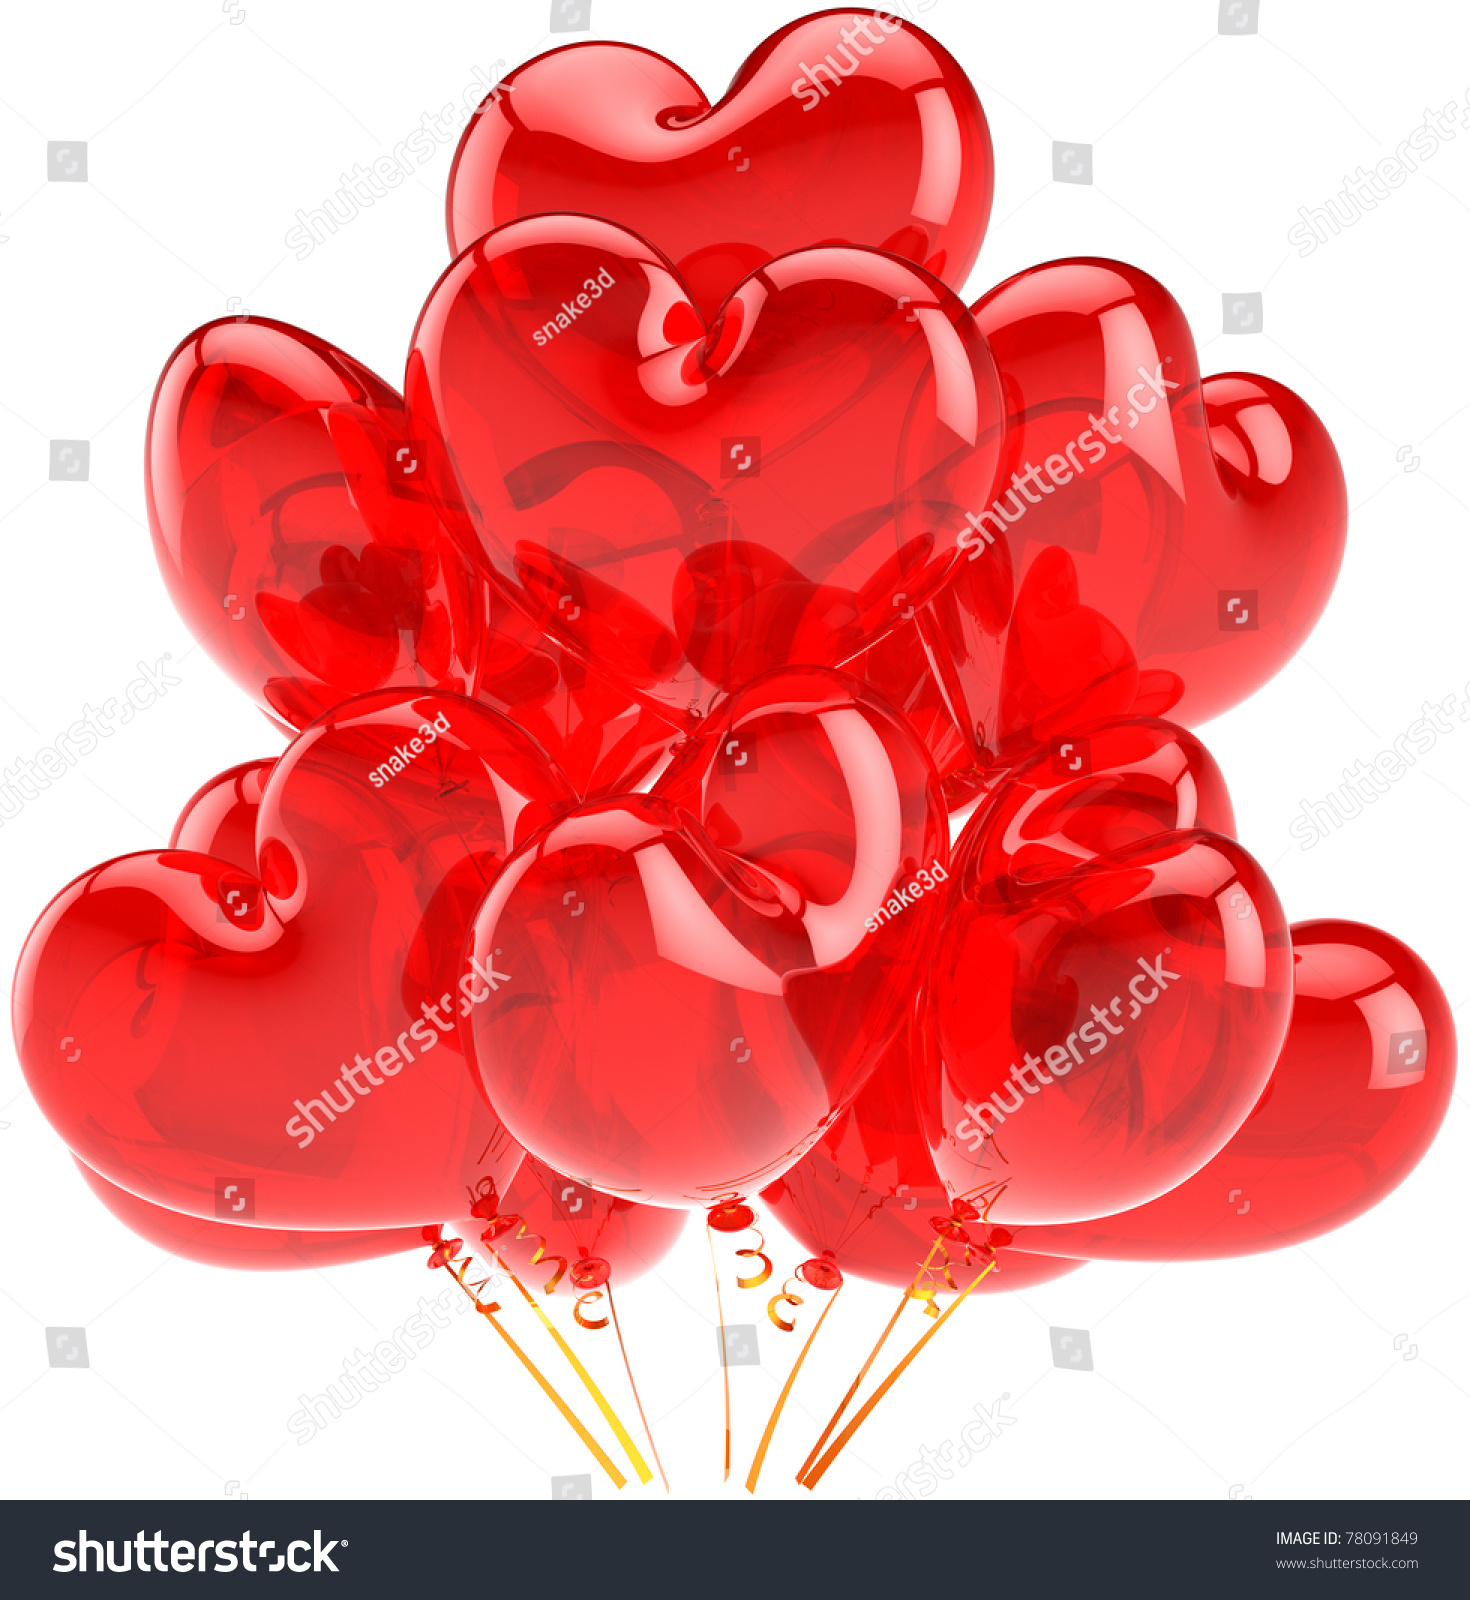 Party balloons red balloon heart shaped stock illustration 78091849 party balloons red balloon heart shaped celebrate decoration happy birthday romantic greeting card love m4hsunfo